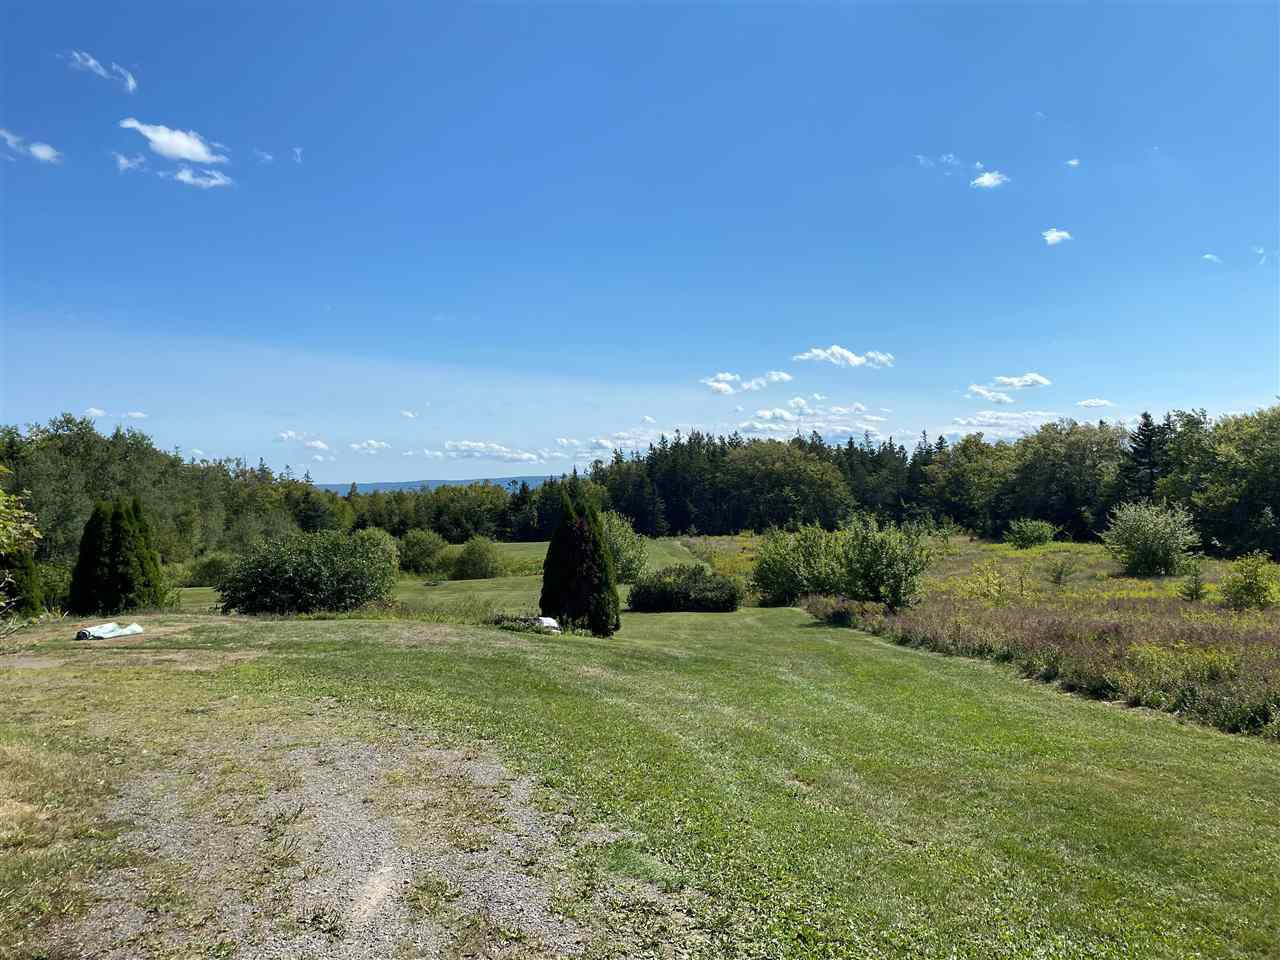 Main Photo: 1920 Brow of Mountain Road in Viewmount: 404-Kings County Vacant Land for sale (Annapolis Valley)  : MLS®# 202018212